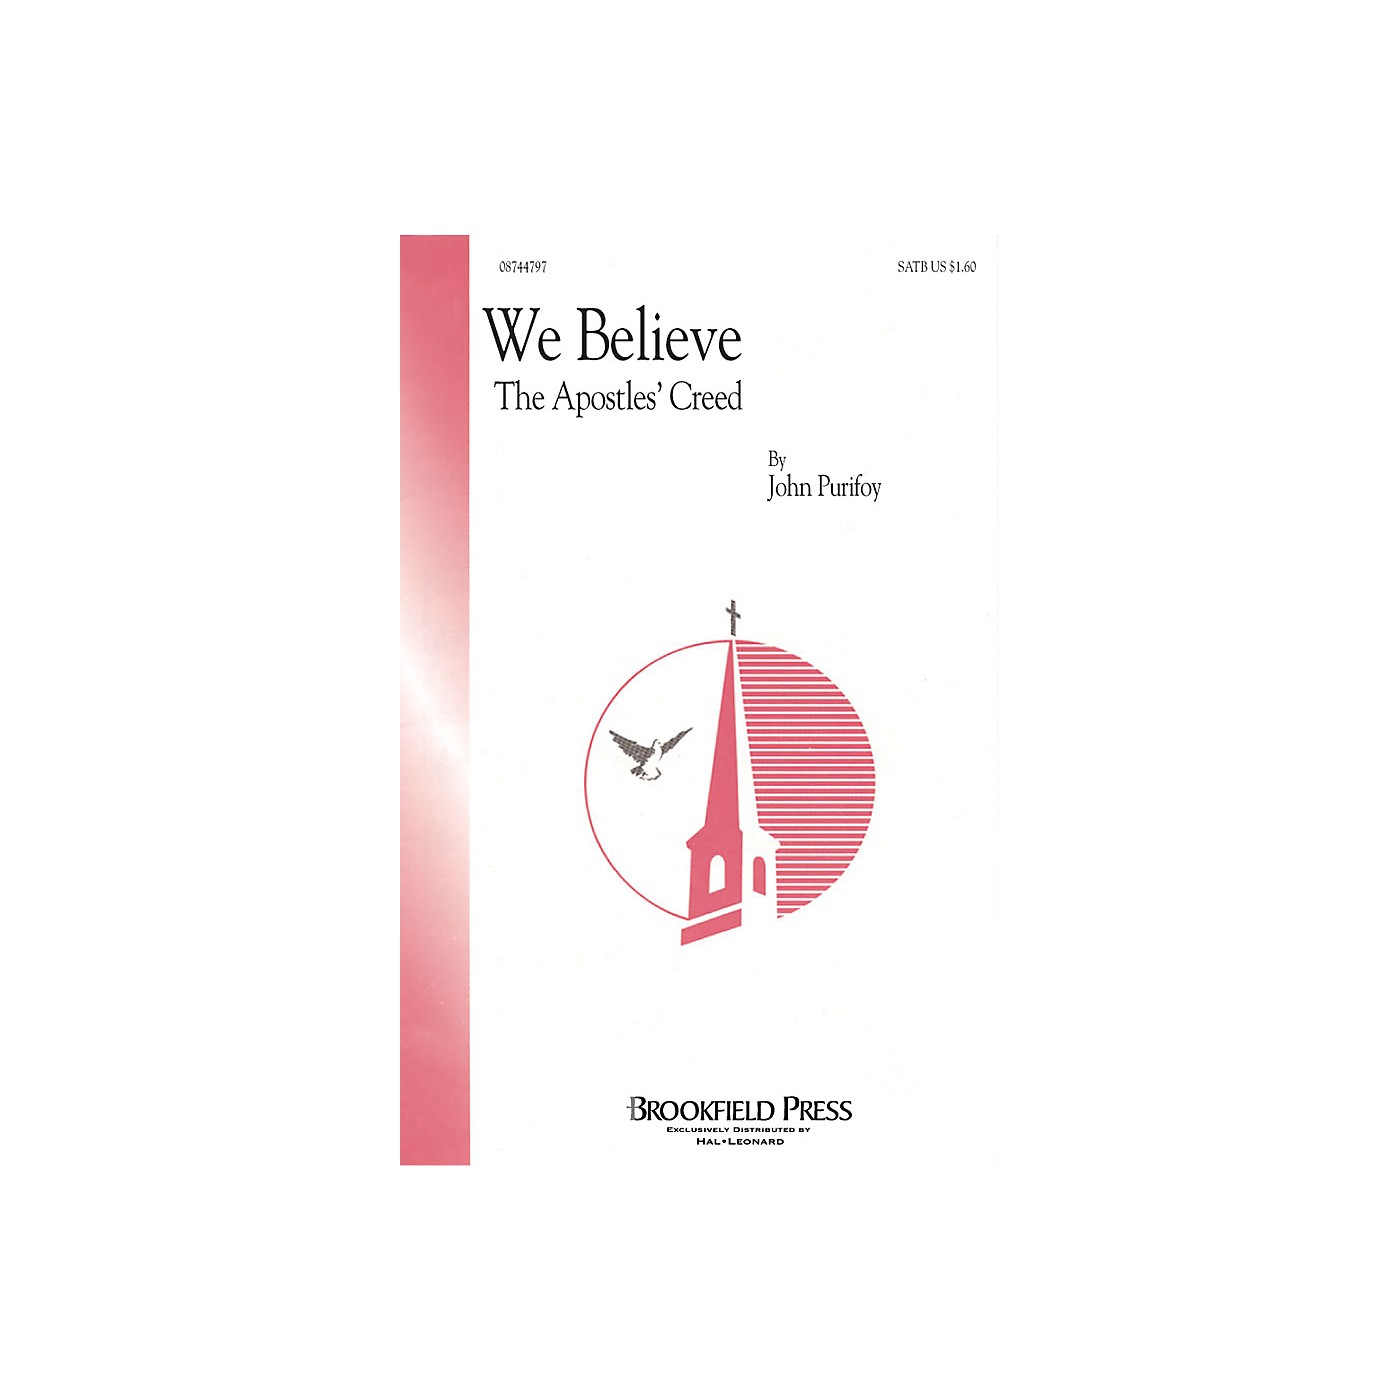 Hal Leonard We Believe (The Apostles' Creed) SATB composed by John Purifoy thumbnail